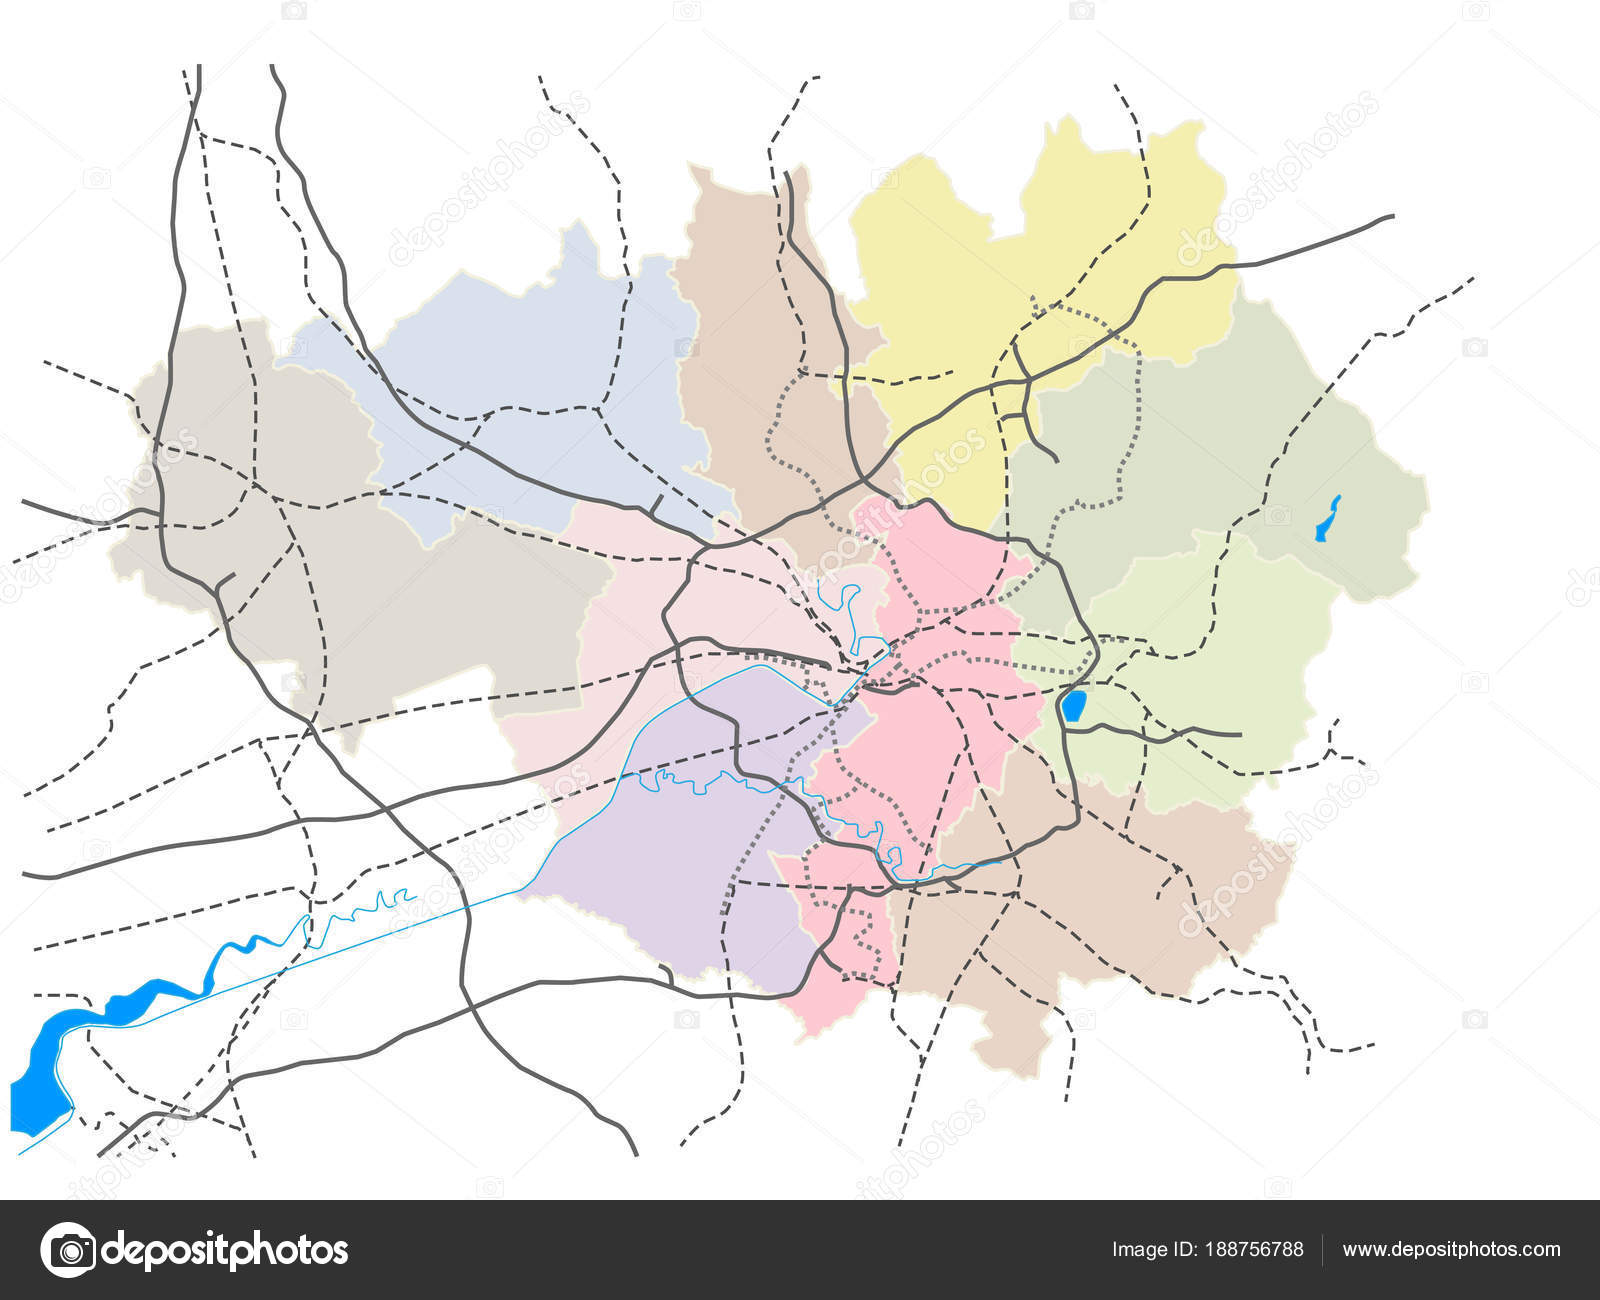 Map Of England Manchester.Manchester England Greater Manchester Transportation Schematics